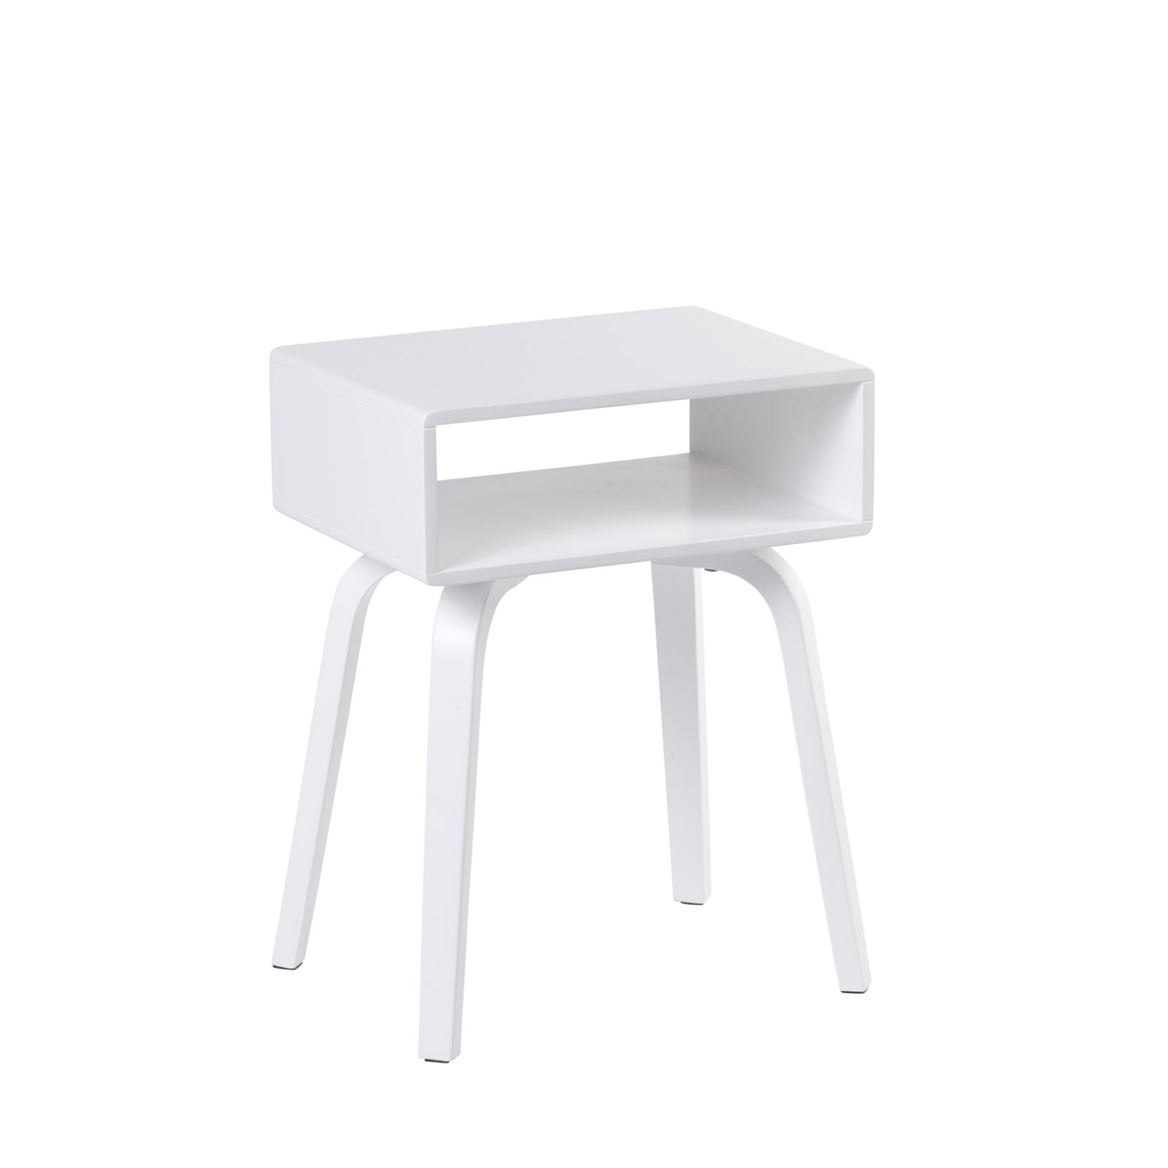 OLI Table de chevet blanc H 52 x Larg. 30 x P 40 cm_oli-table-de-chevet-blanc-h-52-x-larg--30-x-p-40-cm